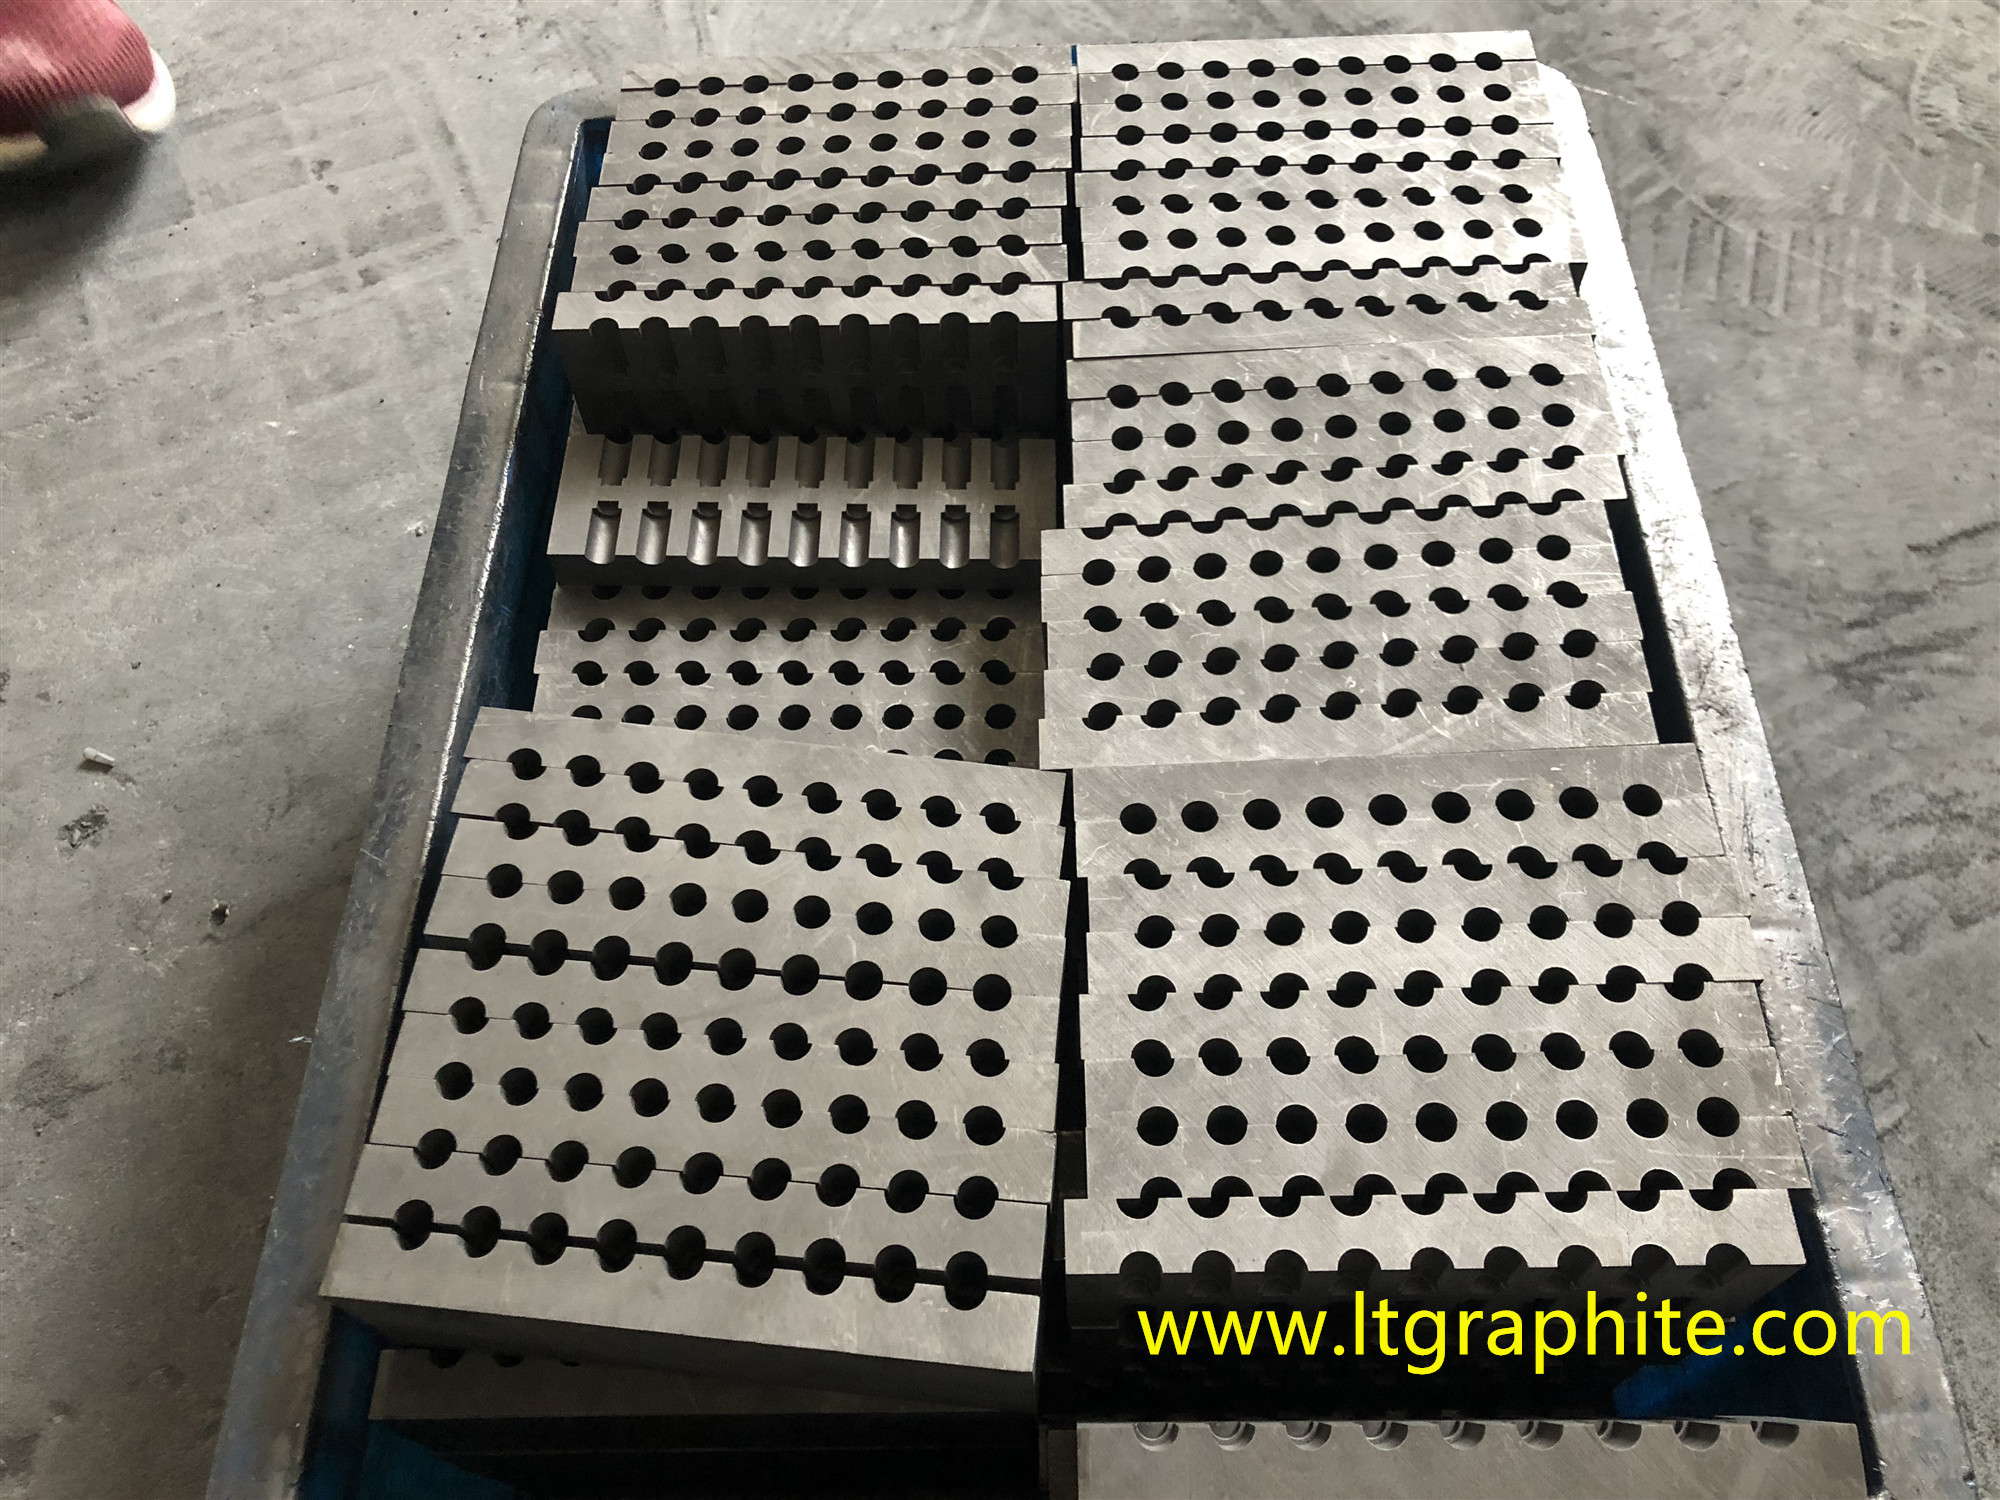 High-Purity Fine-Grain Graphite Mold for Diamond Wire of Quarry